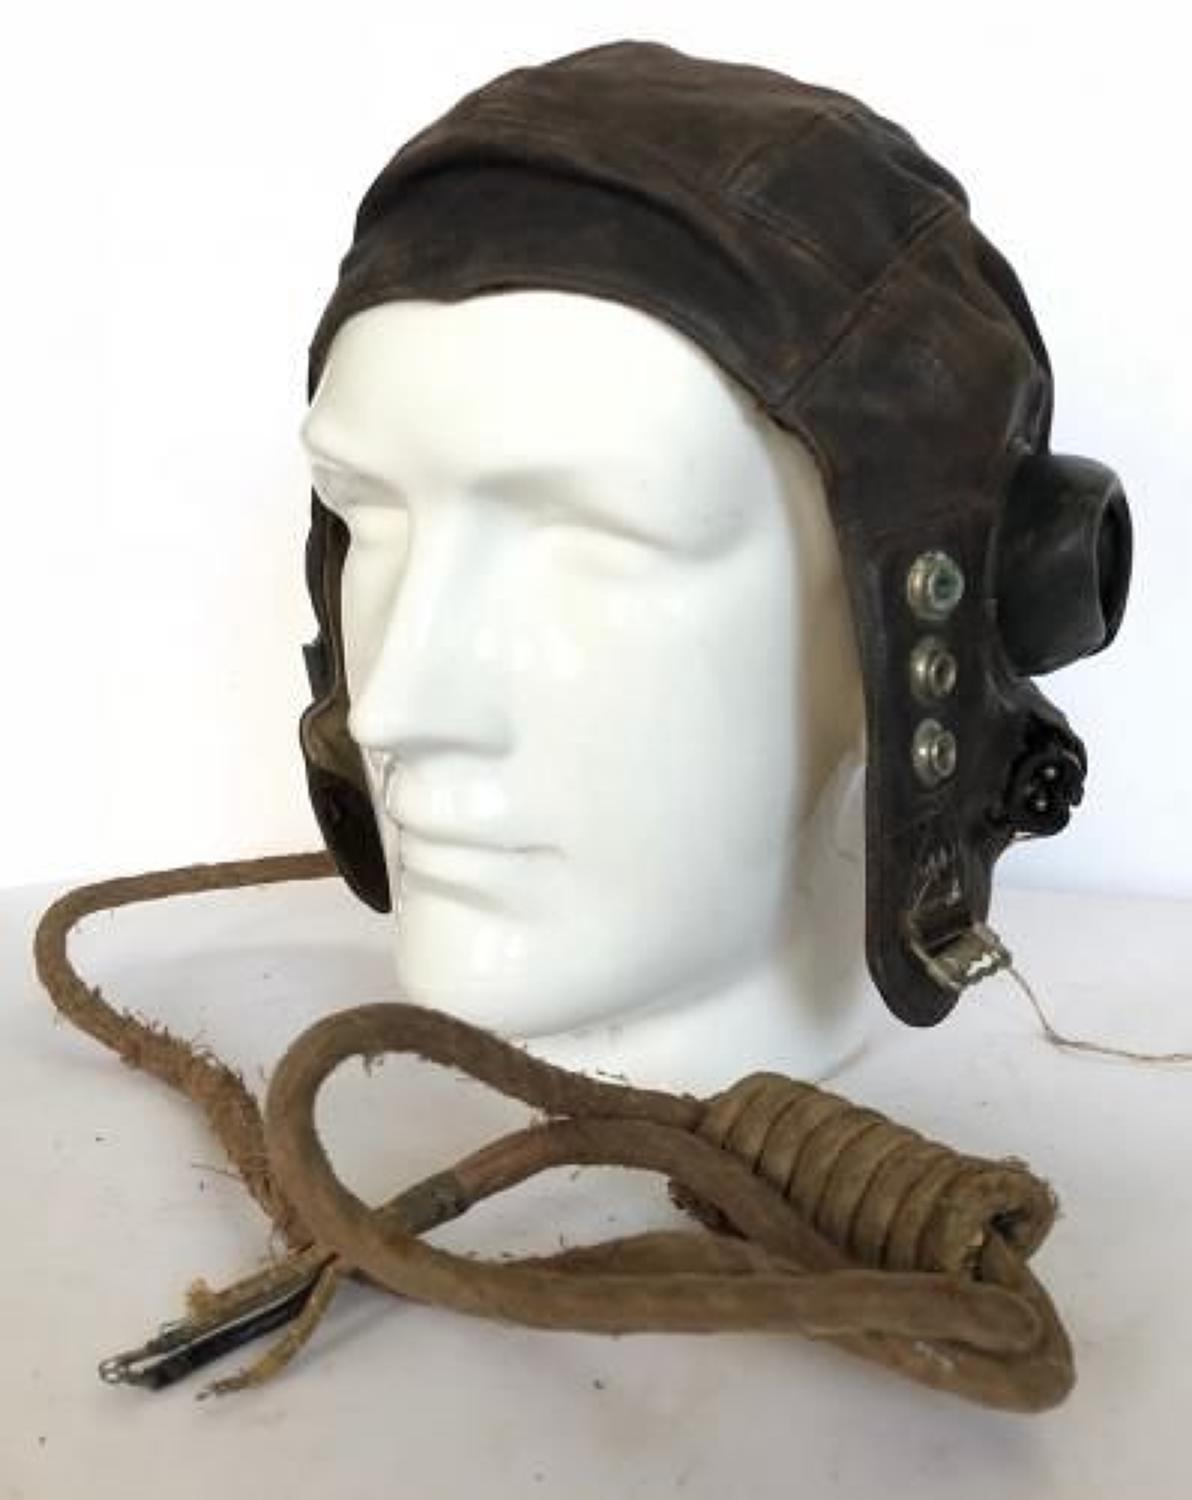 WW2 Period RAF Leather C Type Flying Helmet.